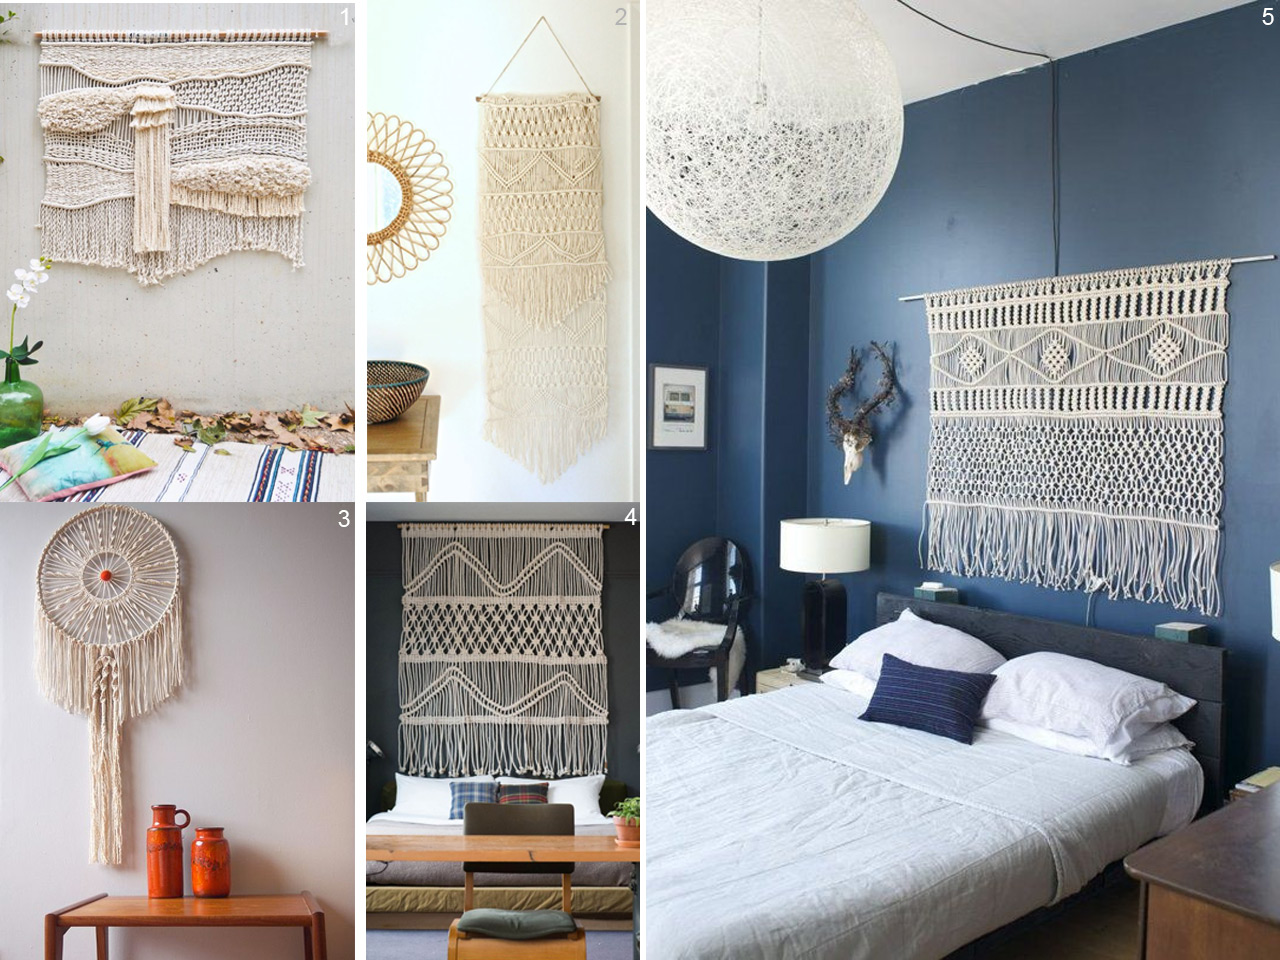 5 ideas para decorar con macram - Decoracion color paredes ...